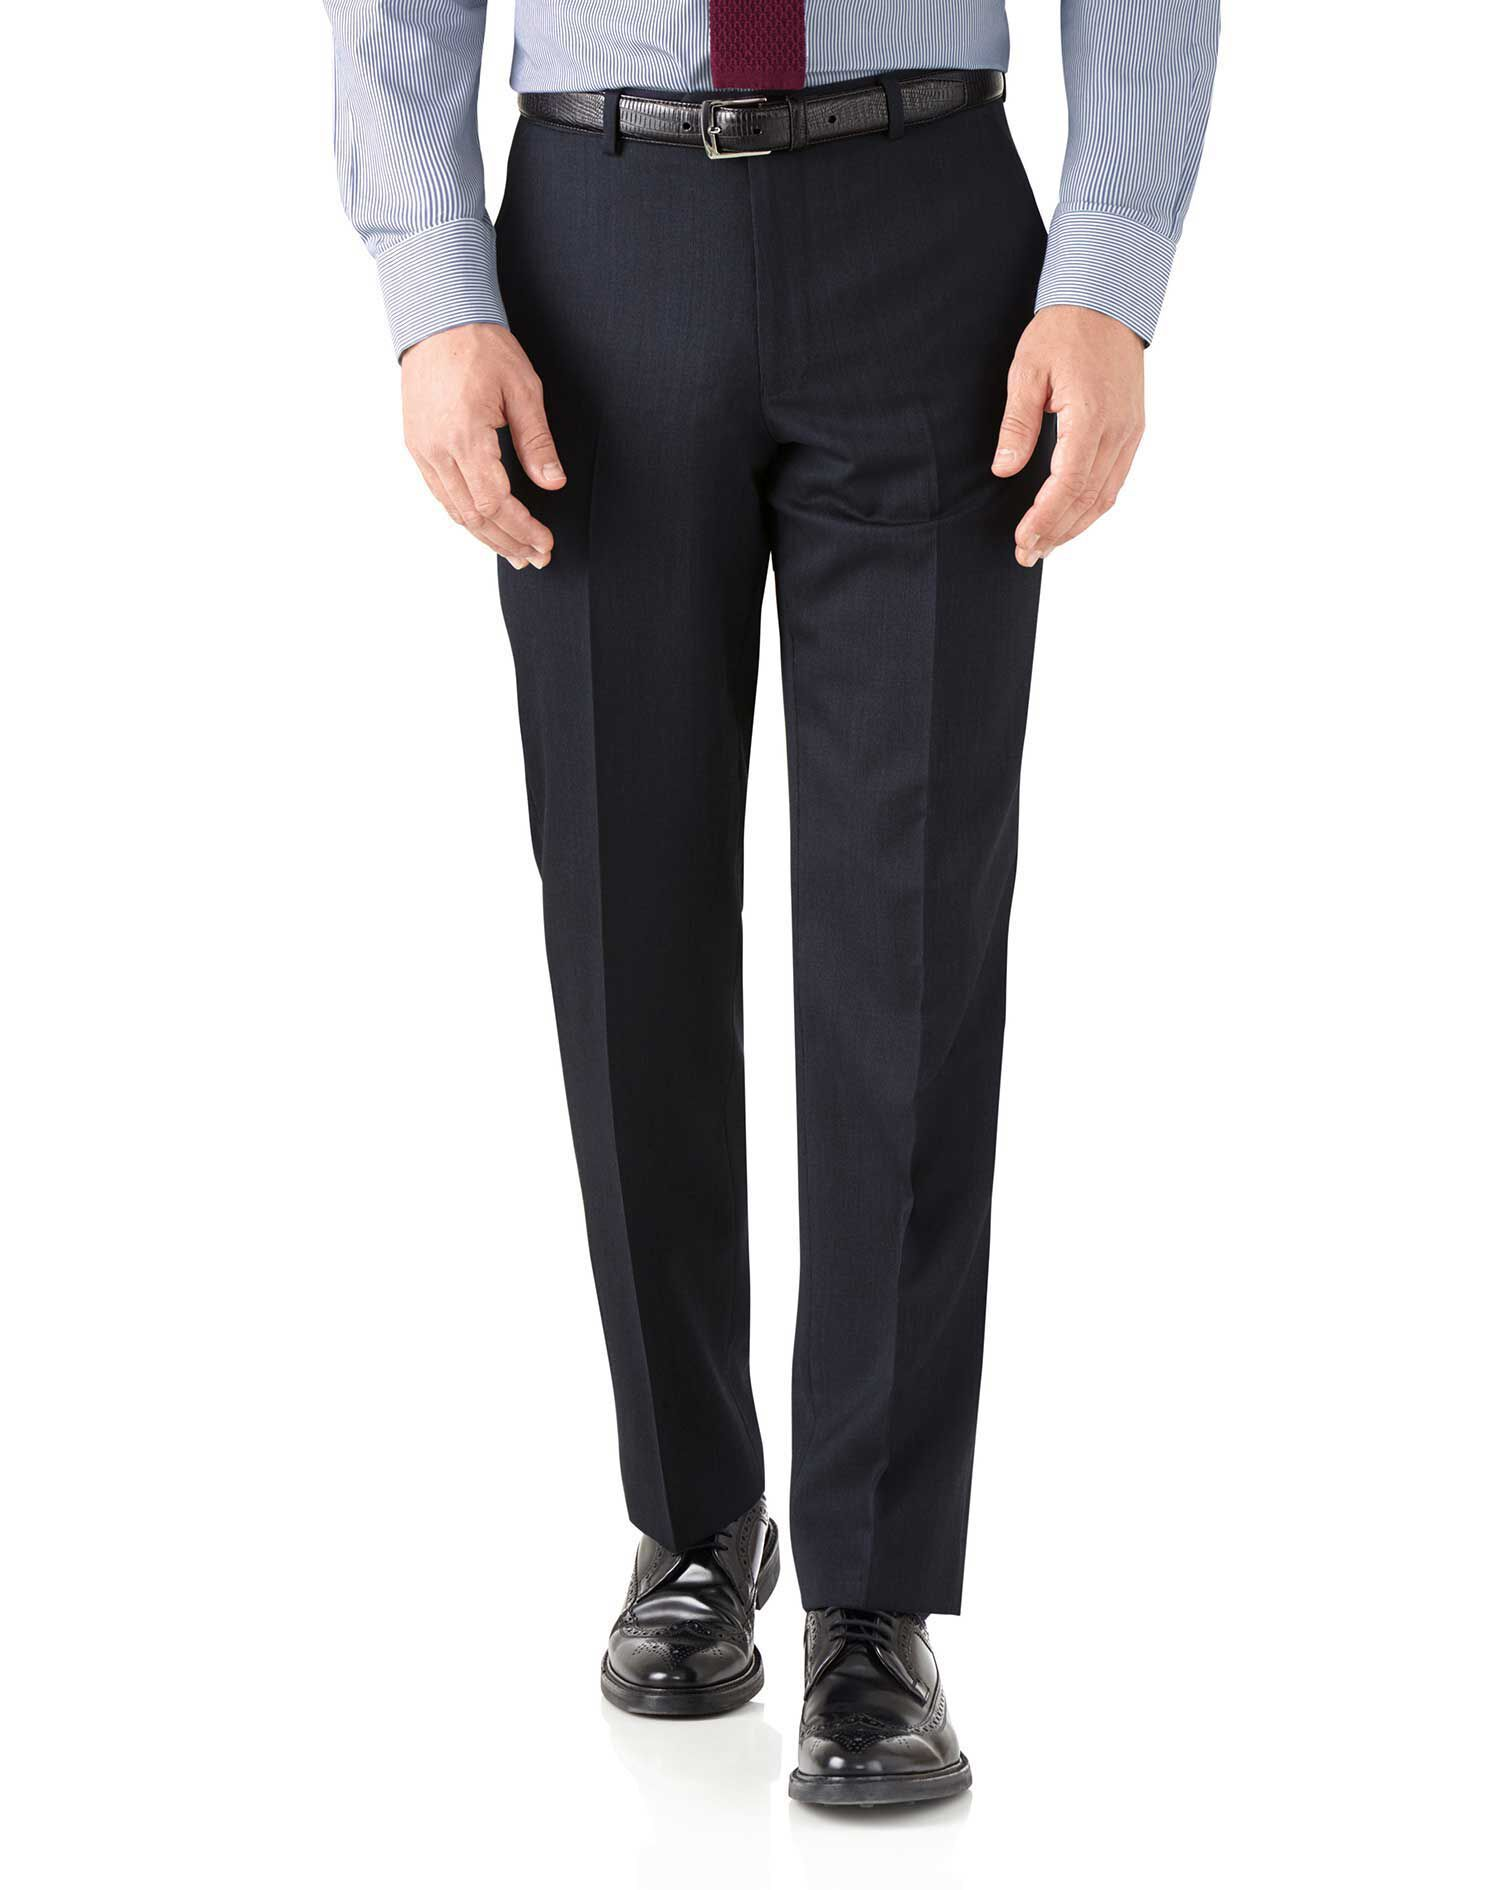 Navy Classic Fit Hairline Business Suit Trousers Size W34 L38 by Charles Tyrwhitt